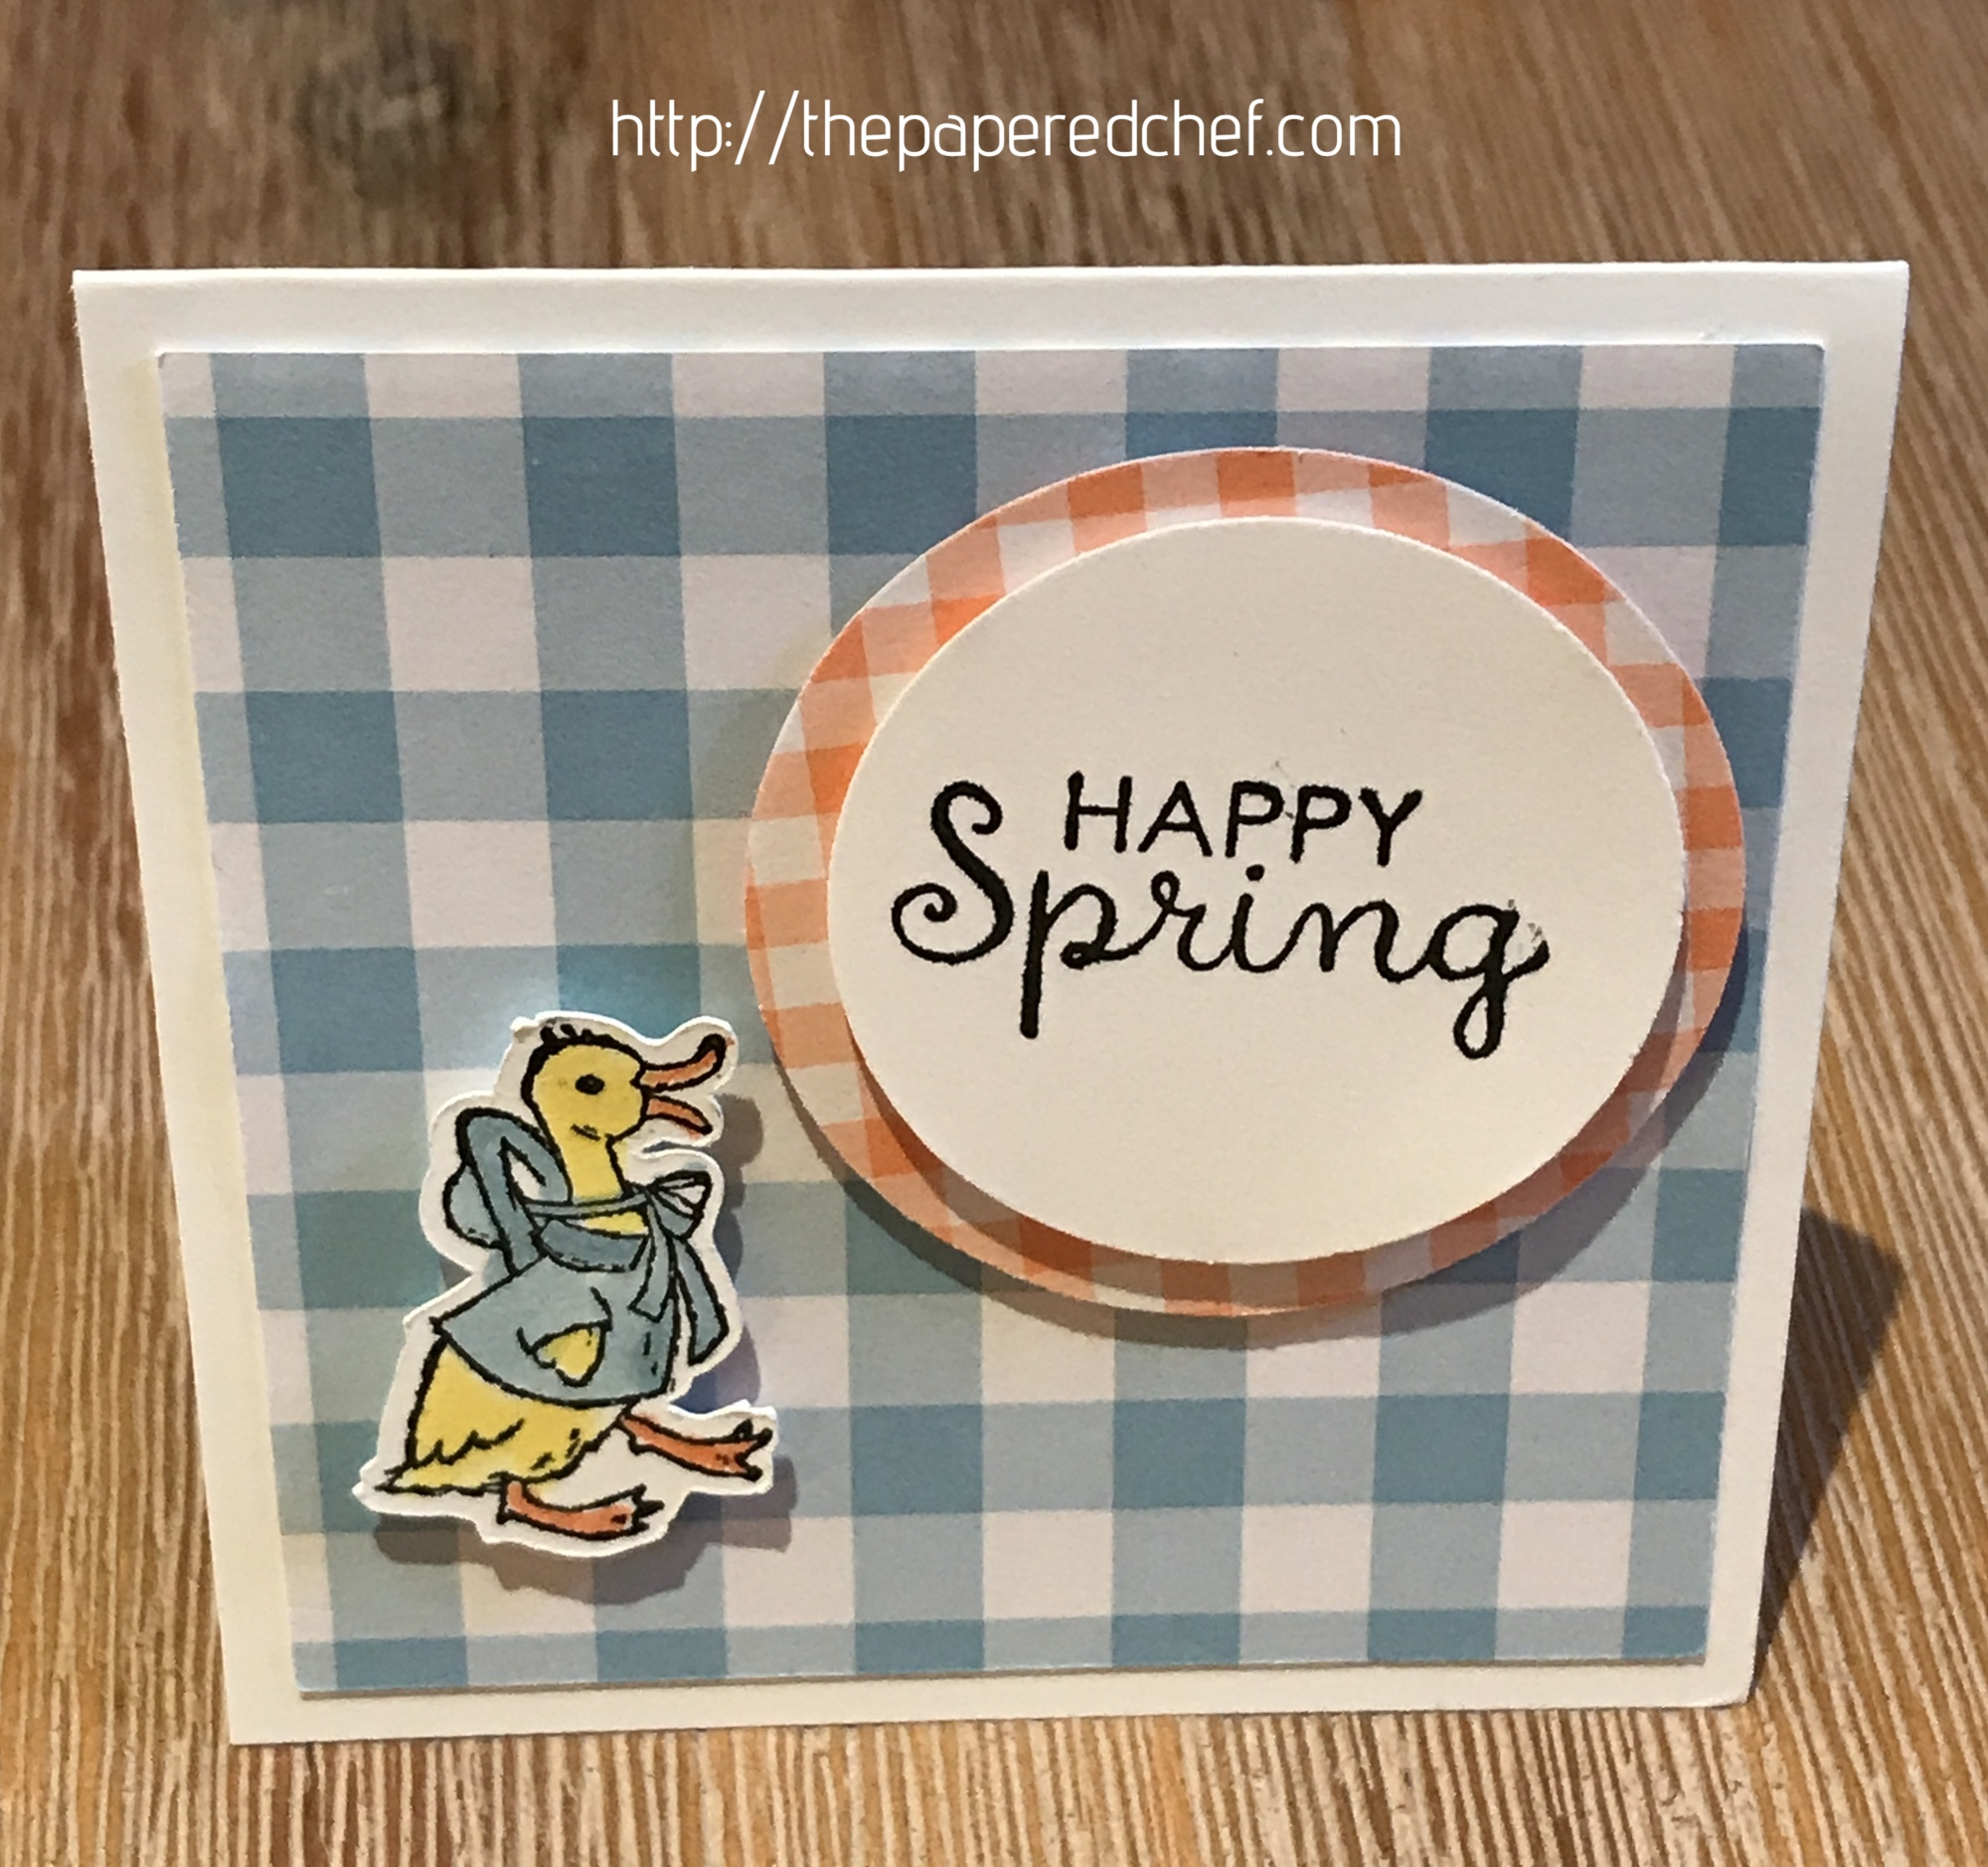 Brother ScanNCut - Fable Friends - Happy Spring